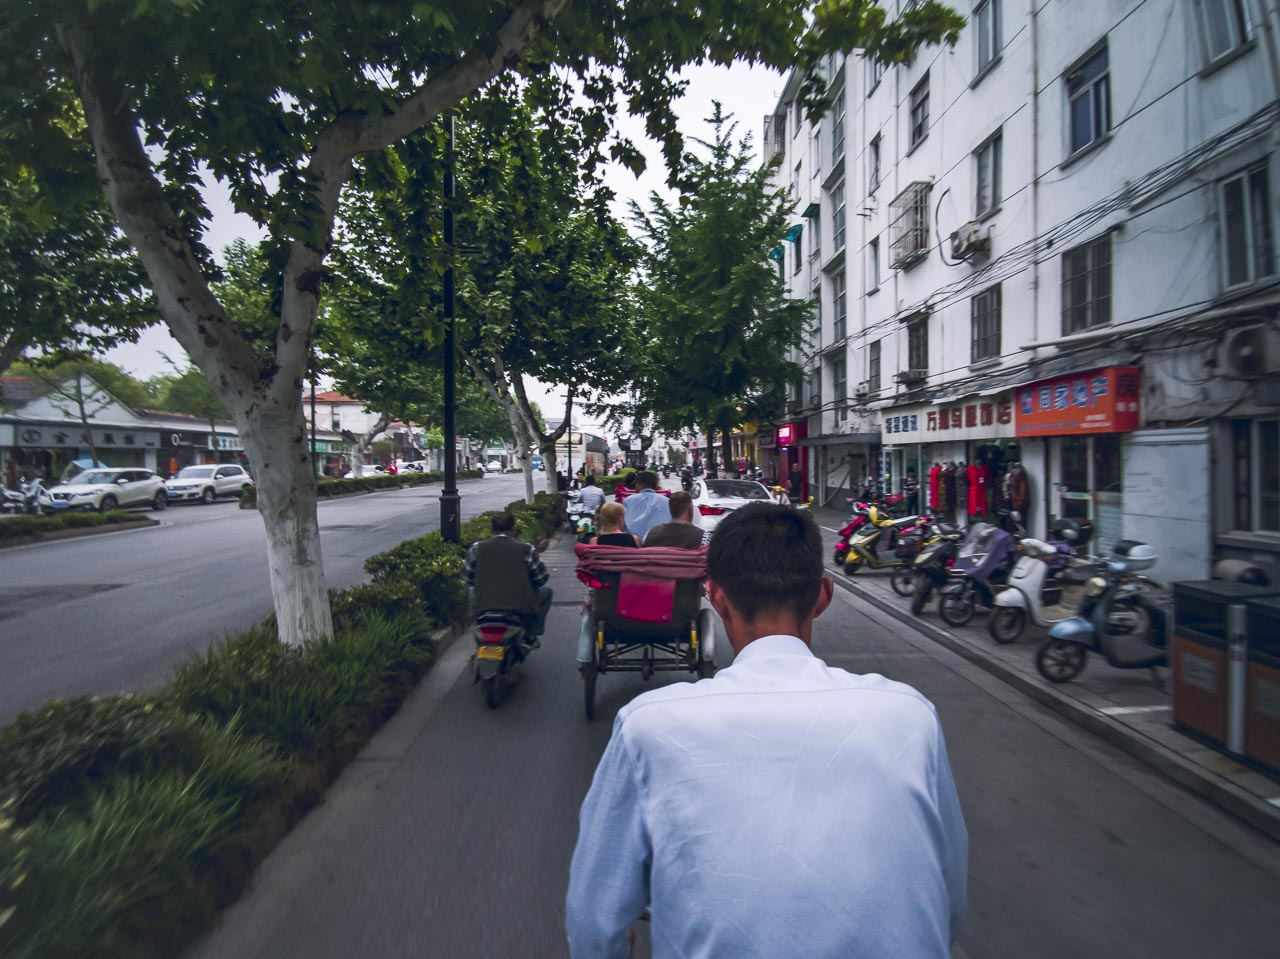 Rickshaw ride through the streets of Suzhou